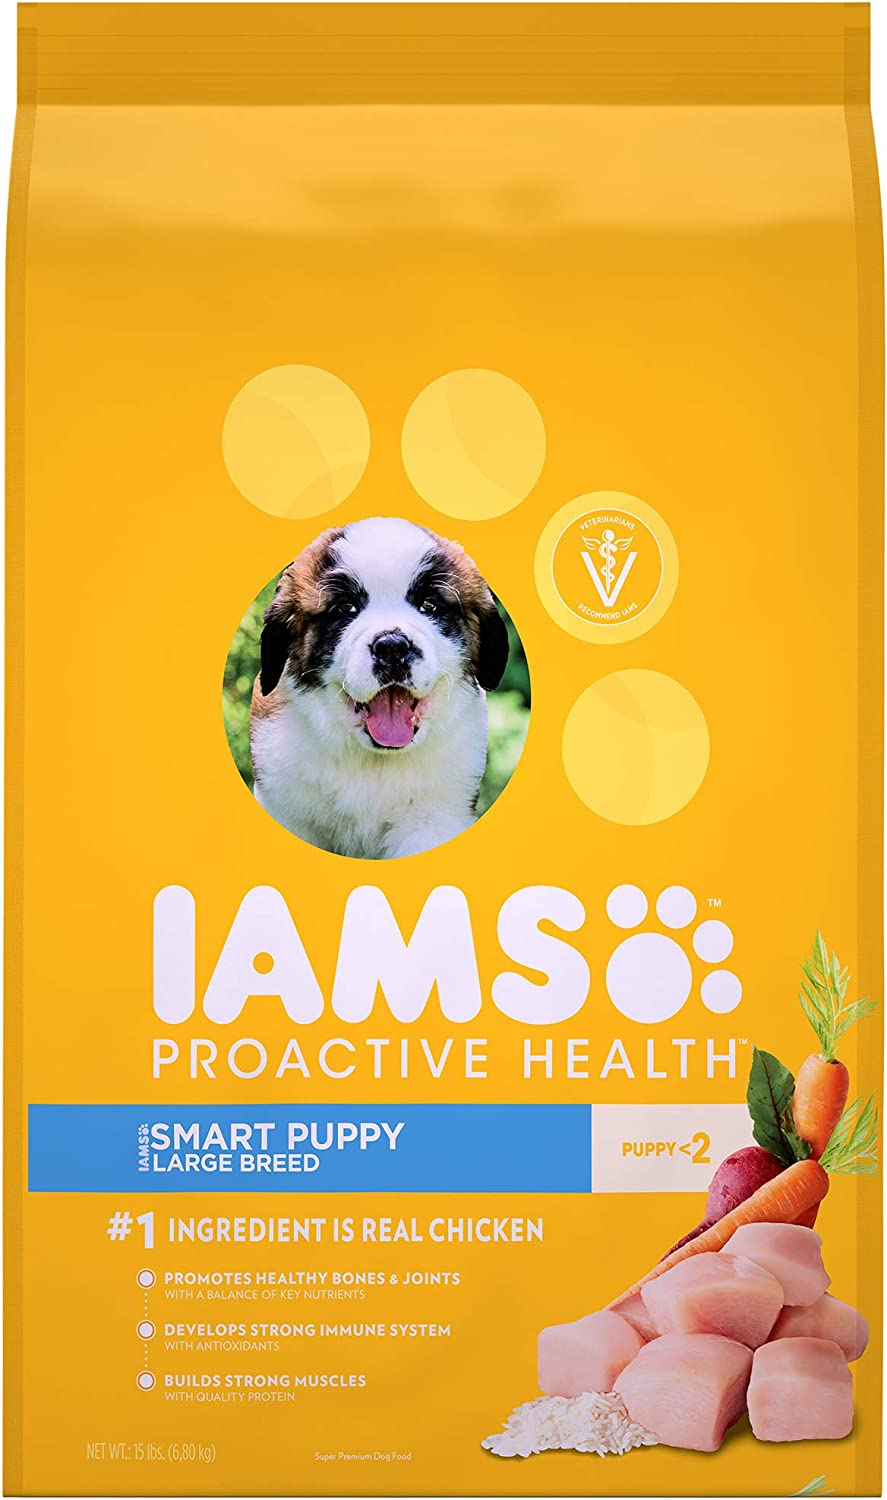 Iams Pack of 2 Proactive Health Smart Puppy Large Breed Dry Puppy Food